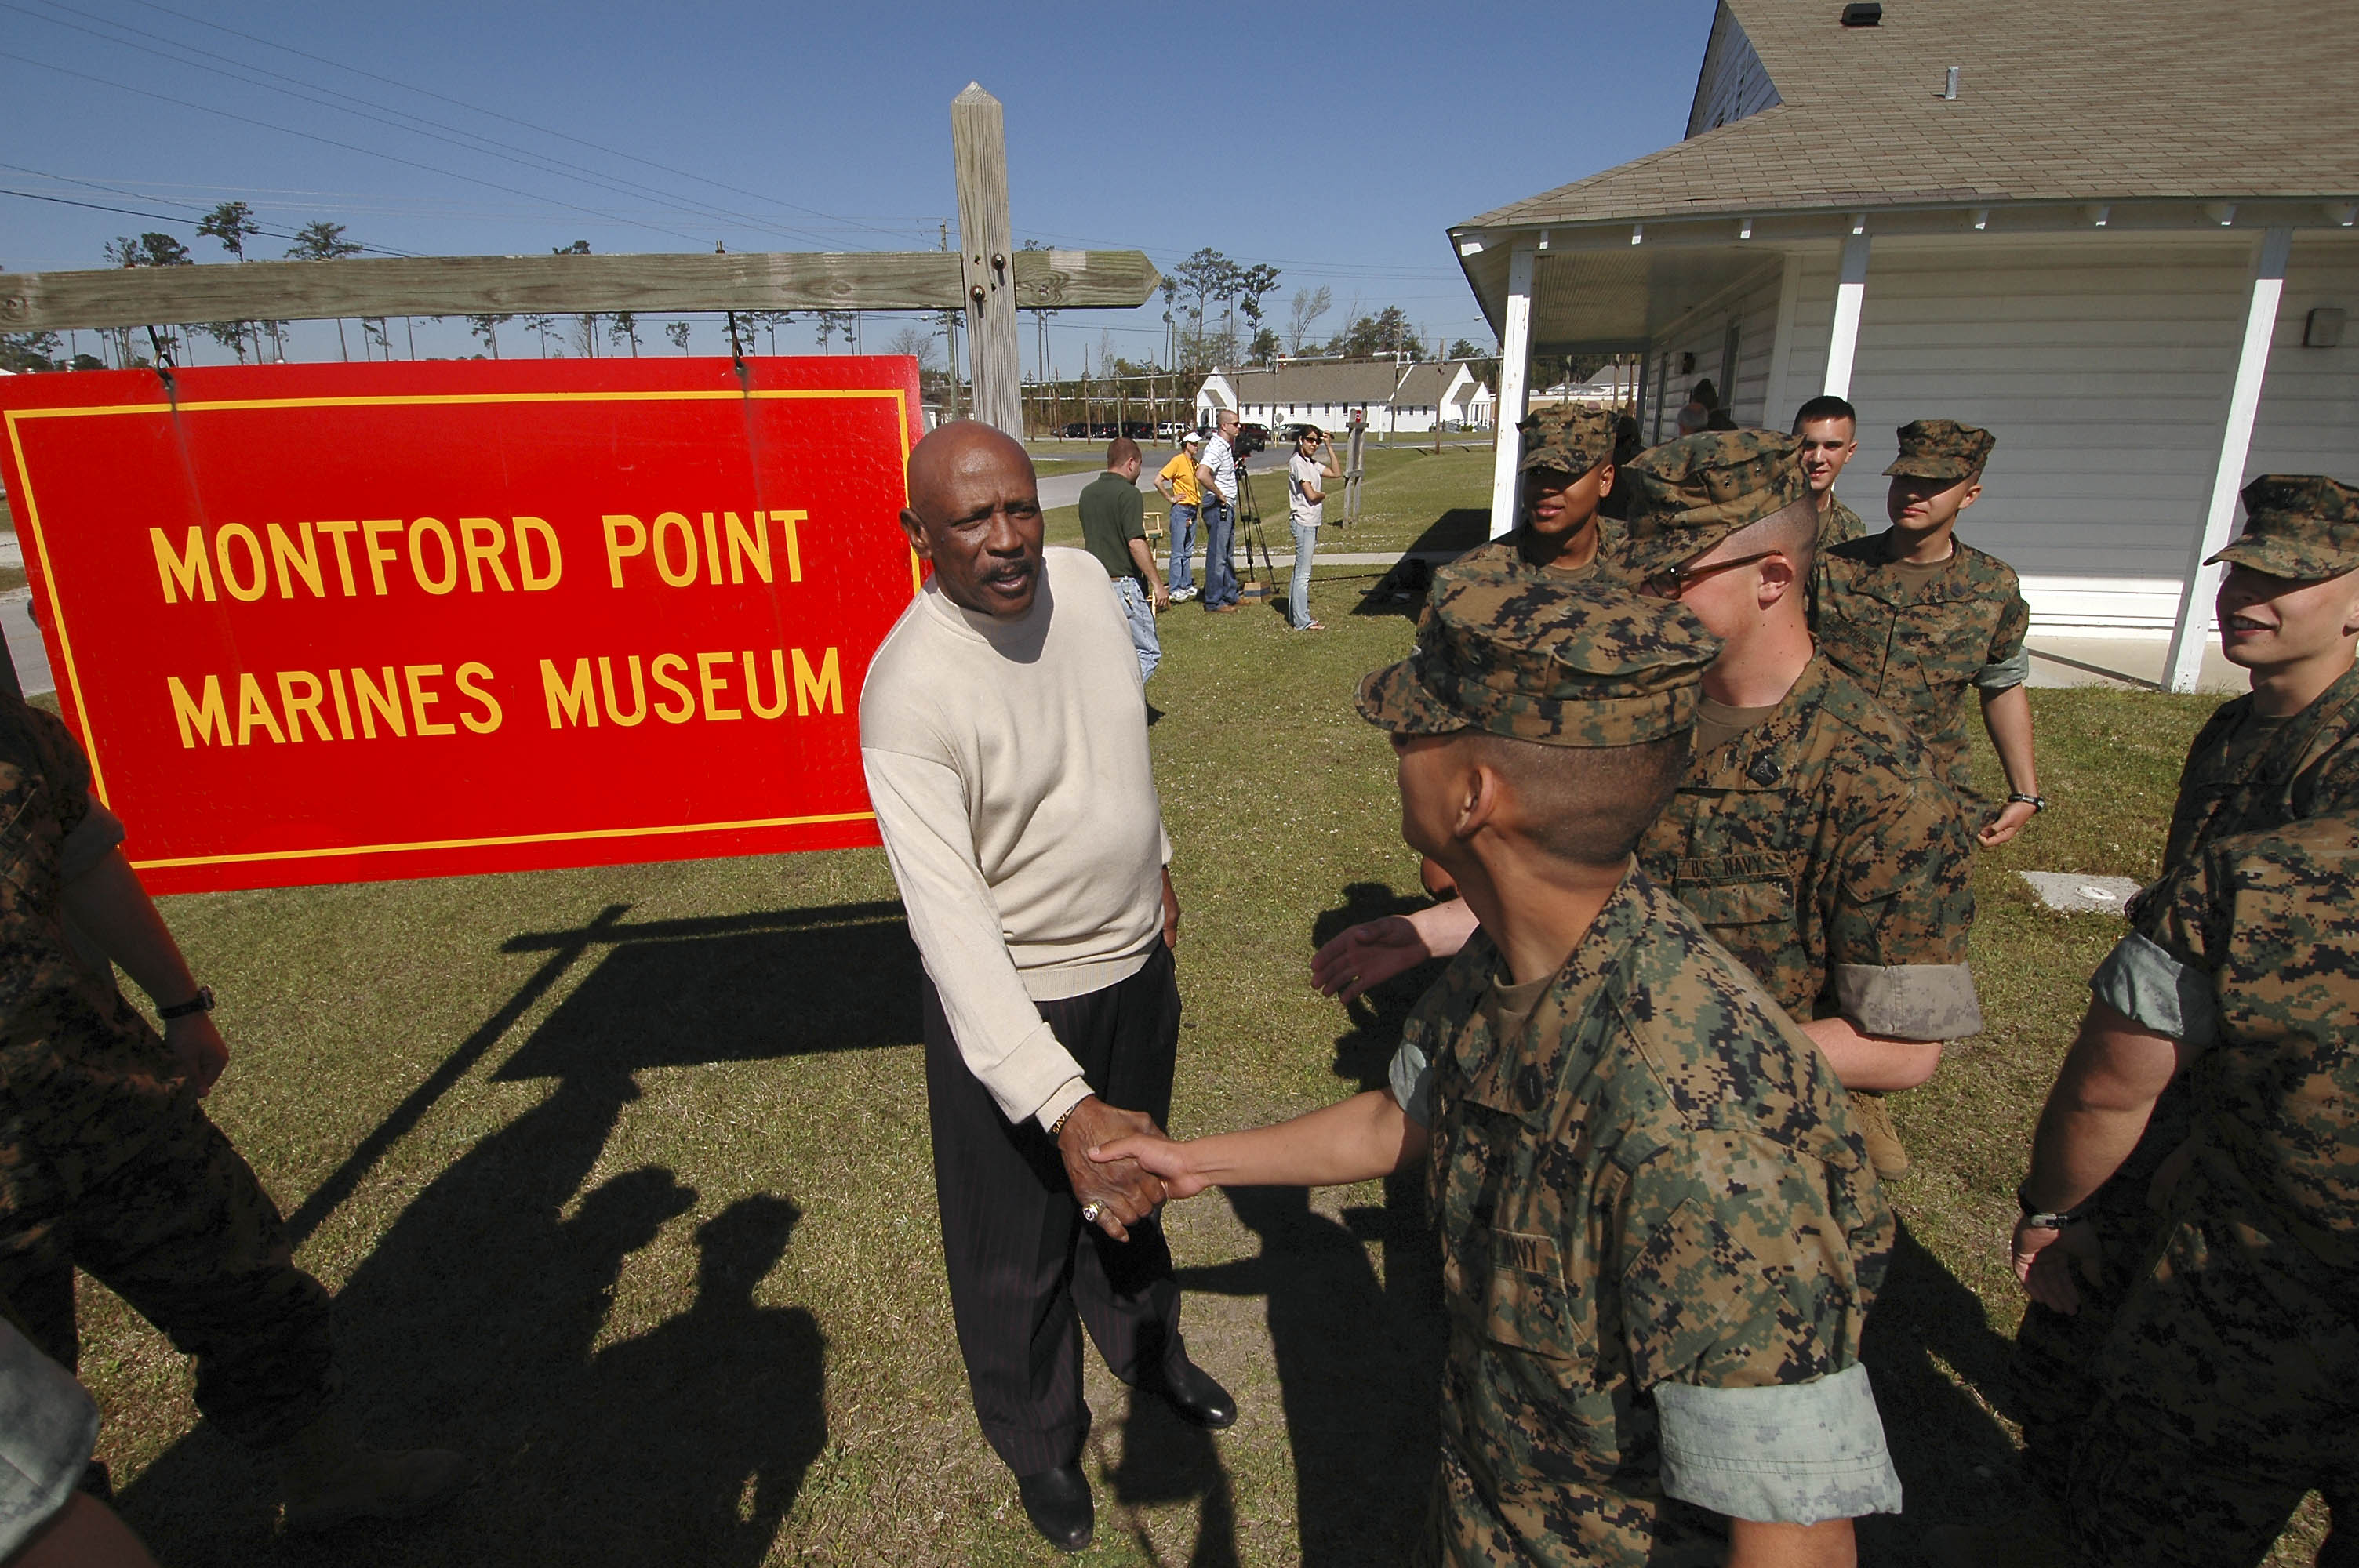 marines of montford point Camp johnson's official website montford point marine association news article on documentary external links montford point marines museum bernard c nalty.